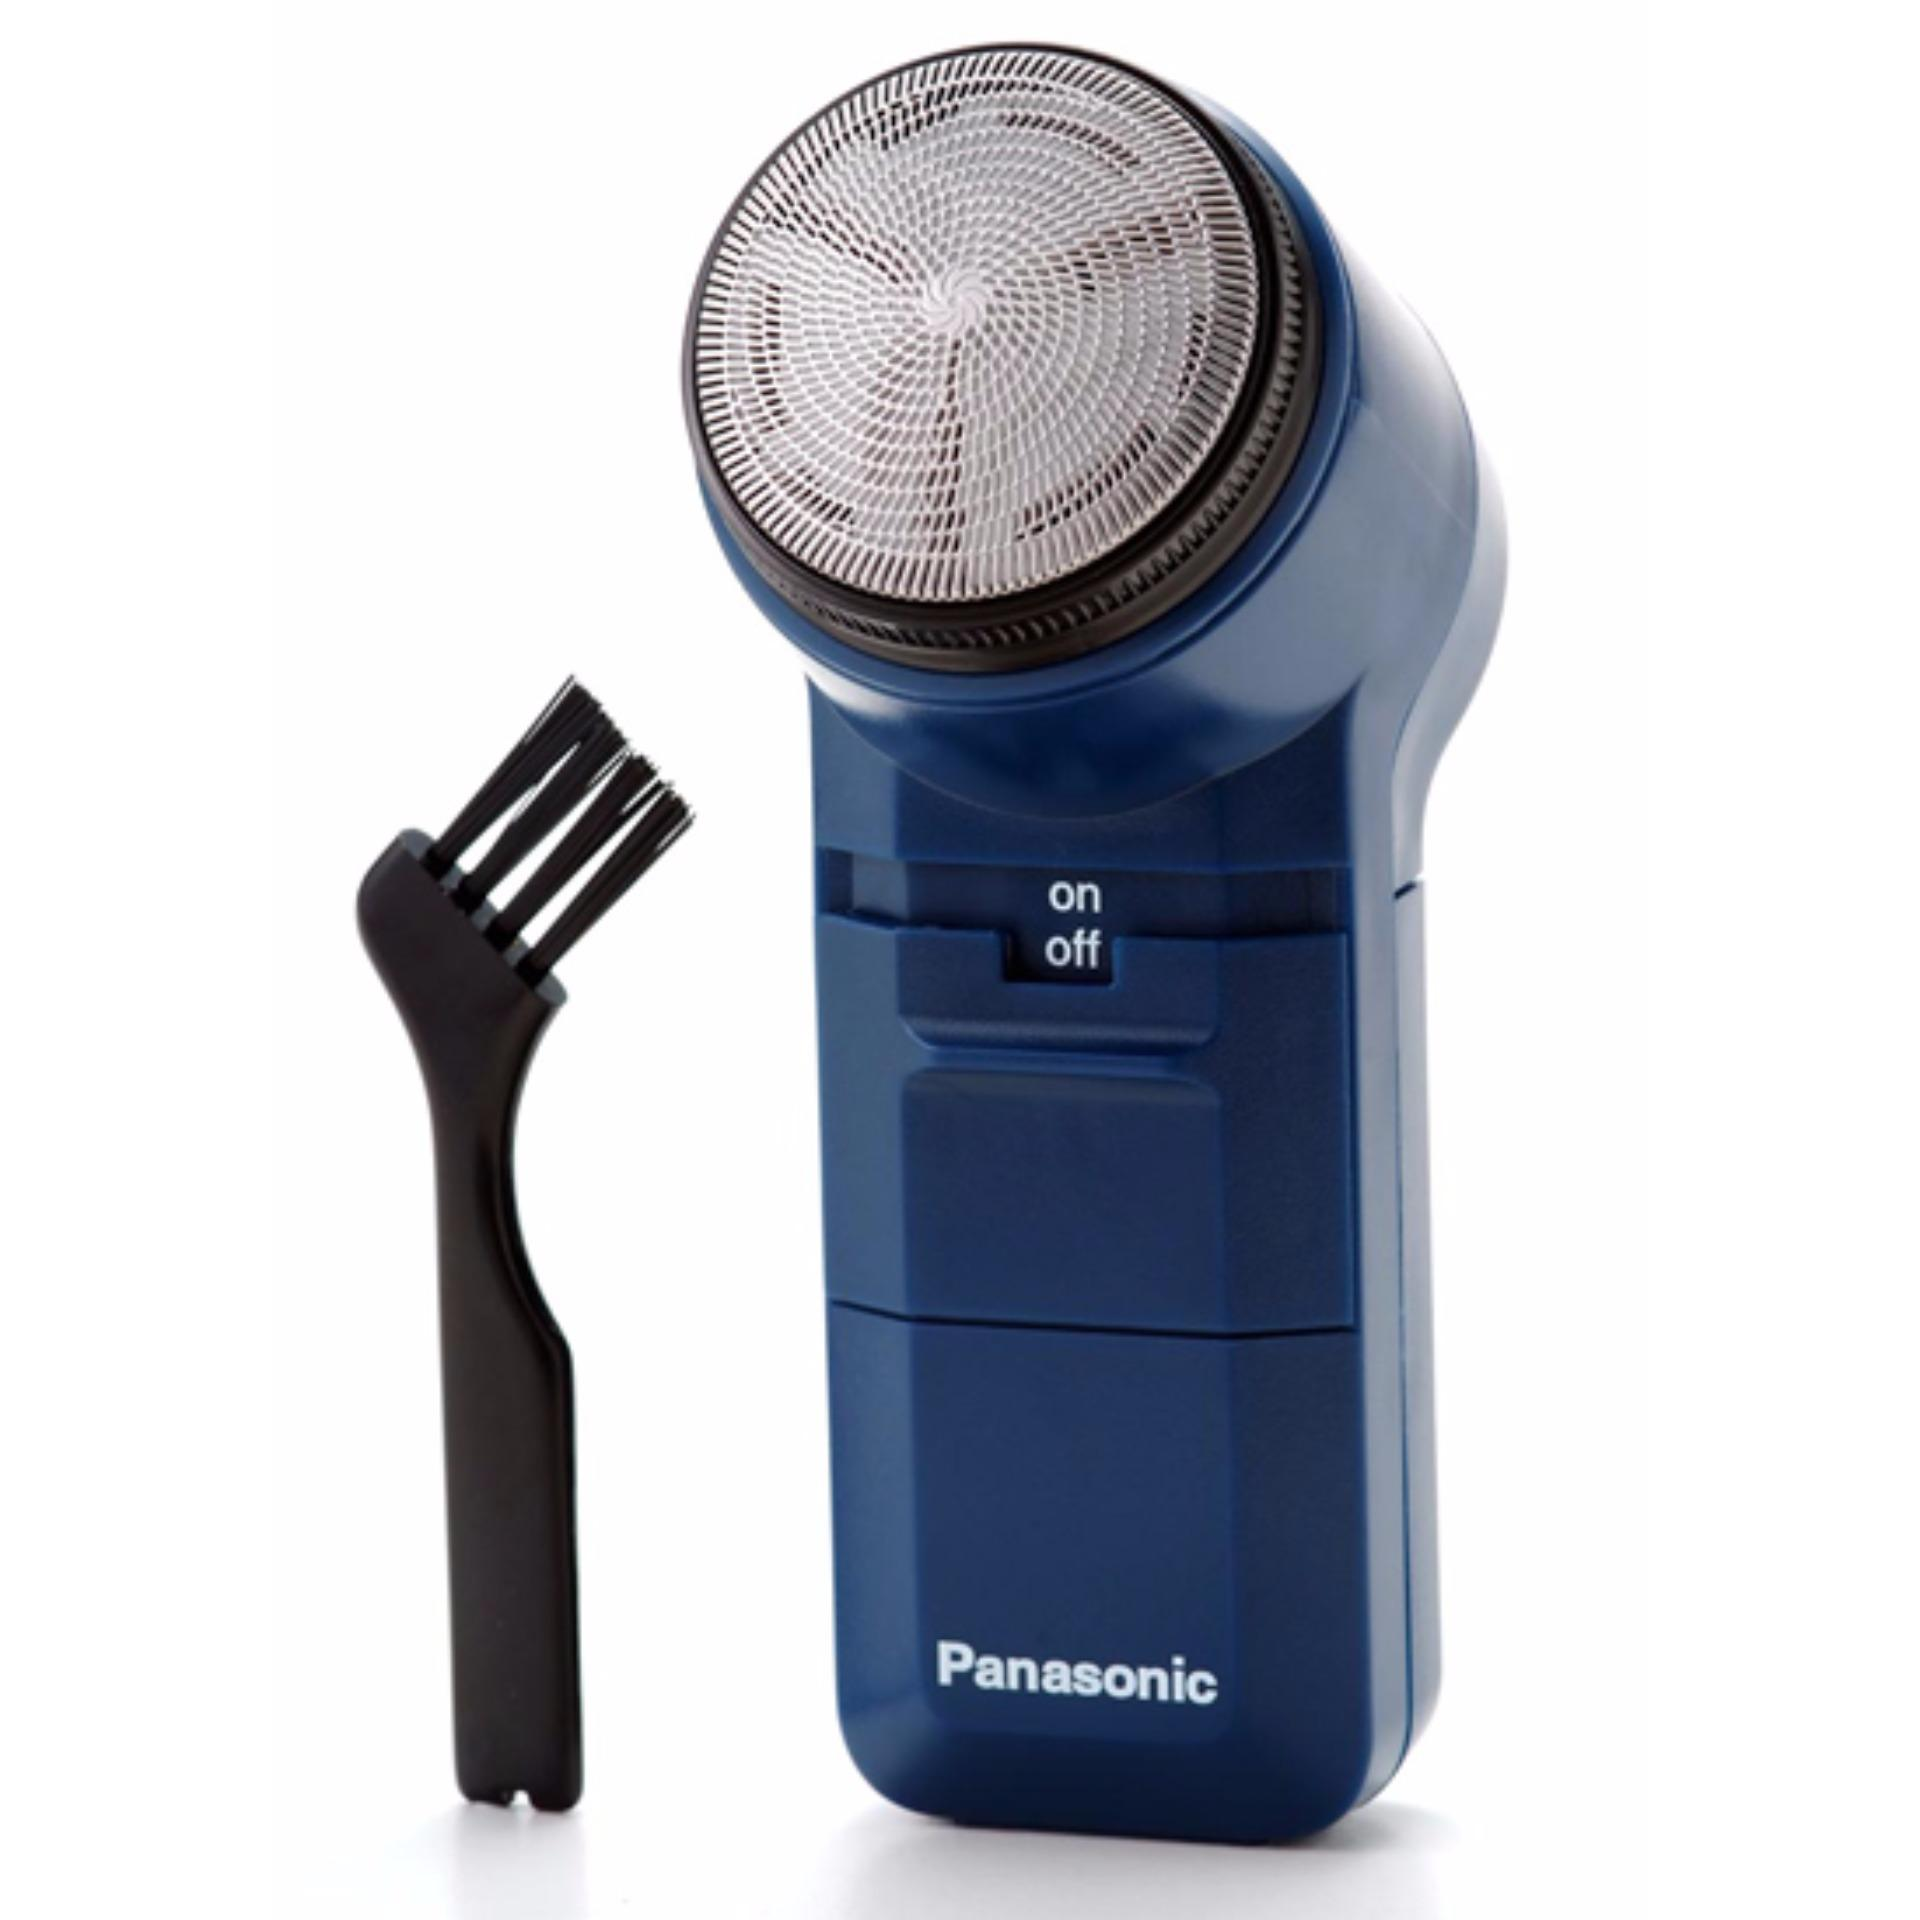 Philippines Panasonic Portable Battery Operated Shaver Es354